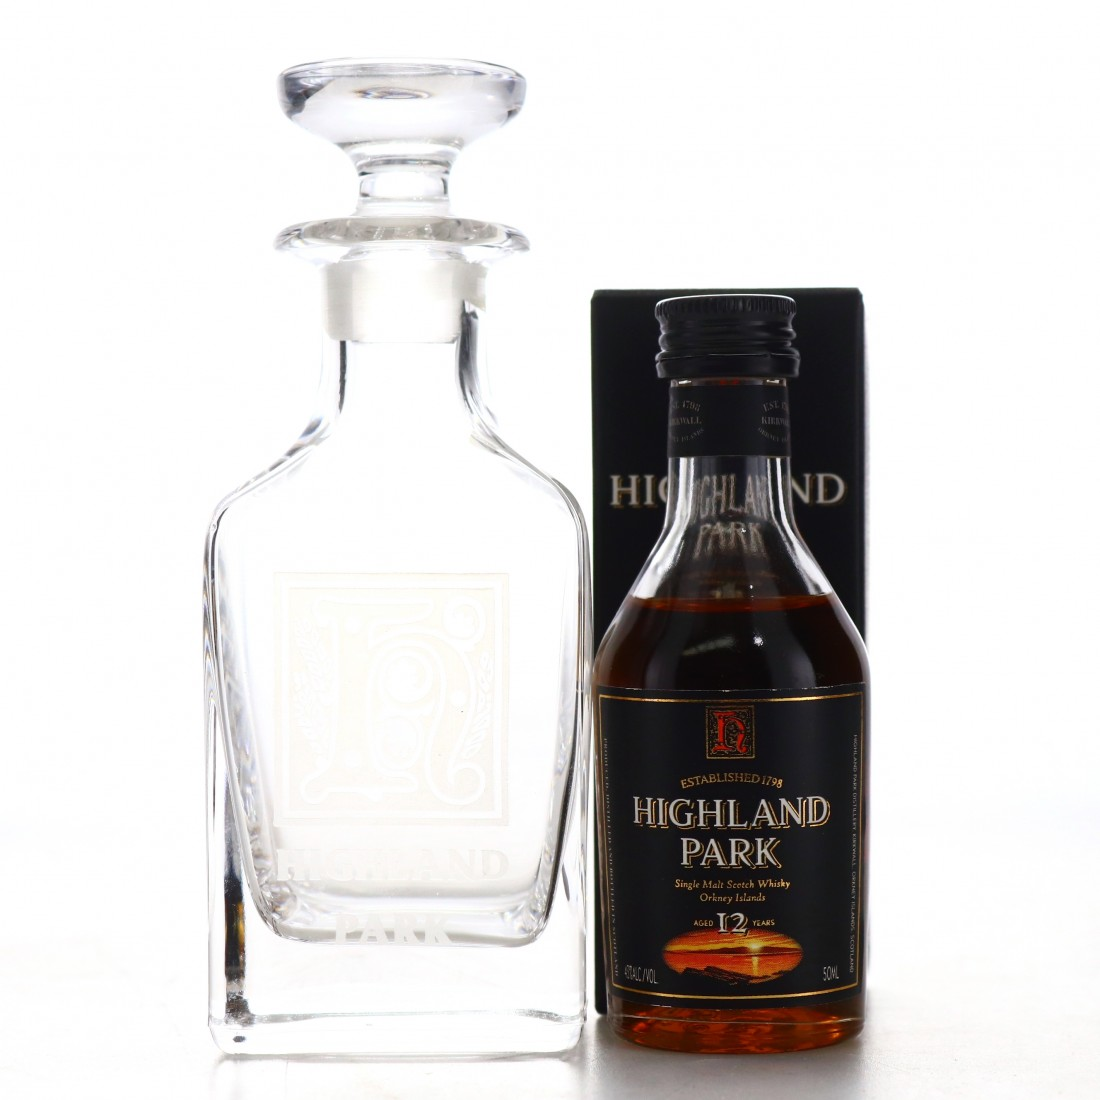 Highland Park 12 Year Old Miniature 1990s / Includes Mini Decanter